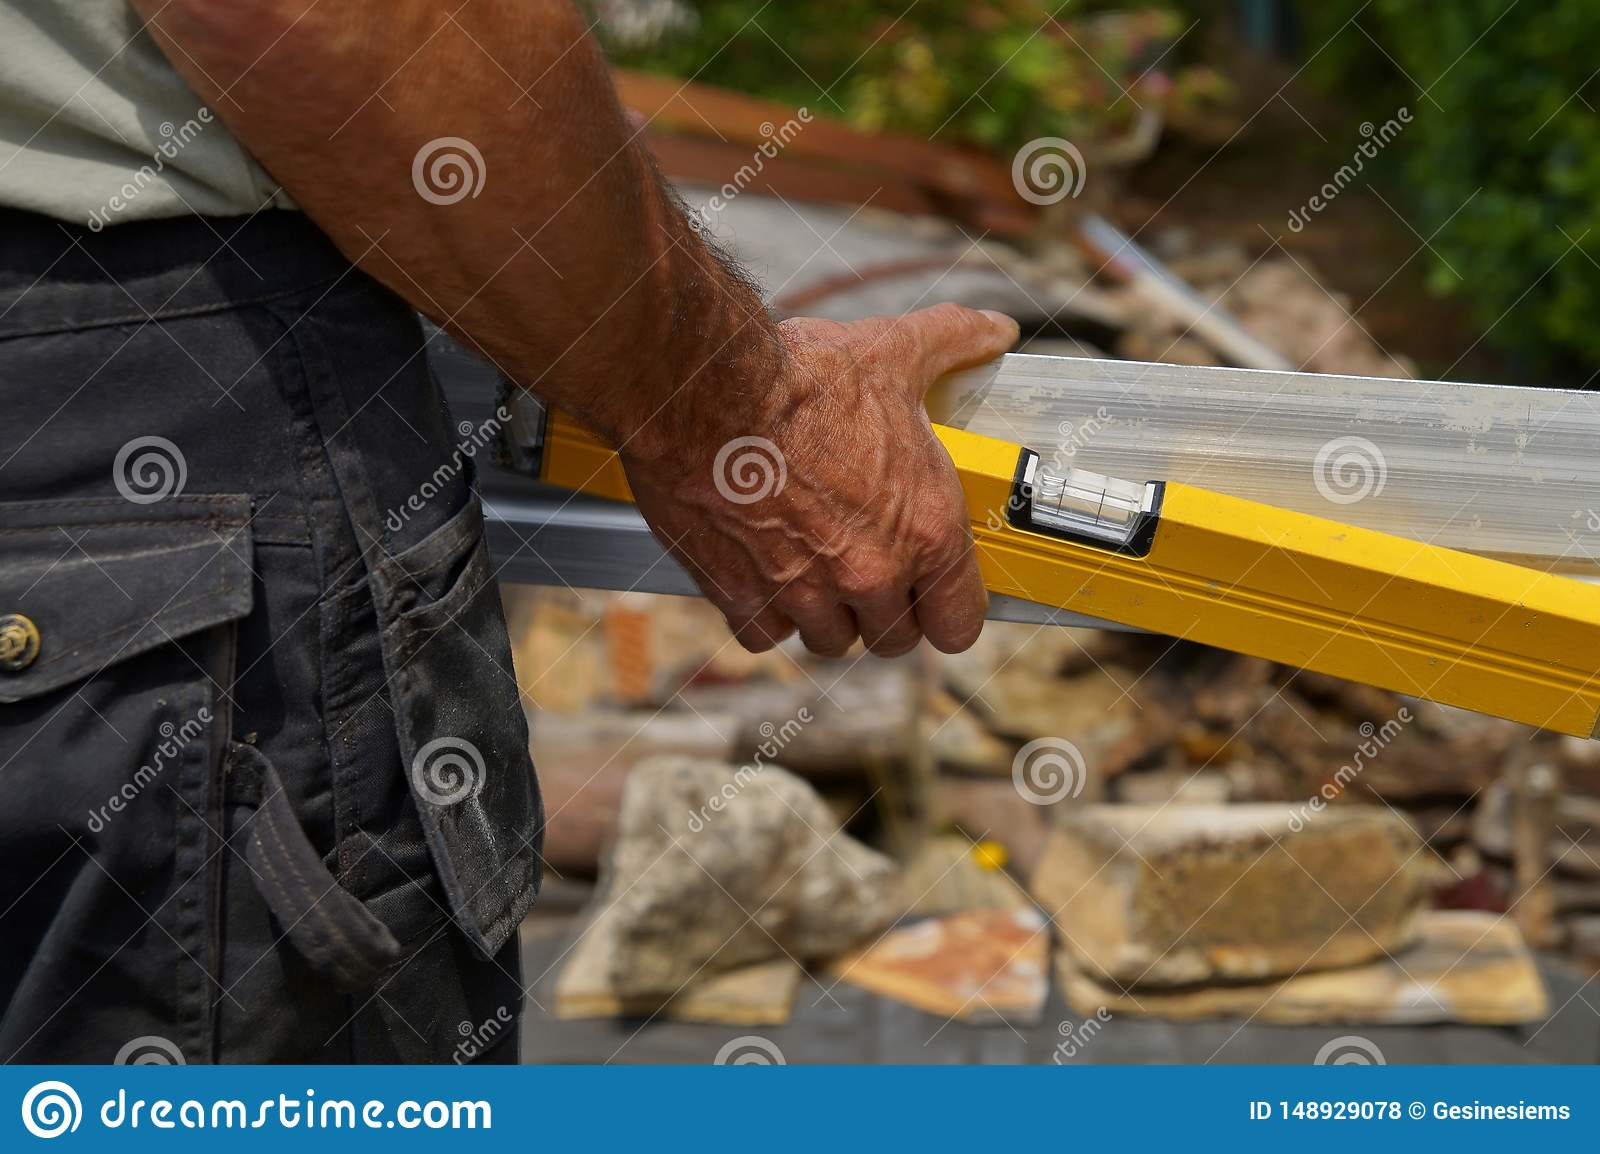 Back view of worker holding a Spirit Level and a straightedge in hand.